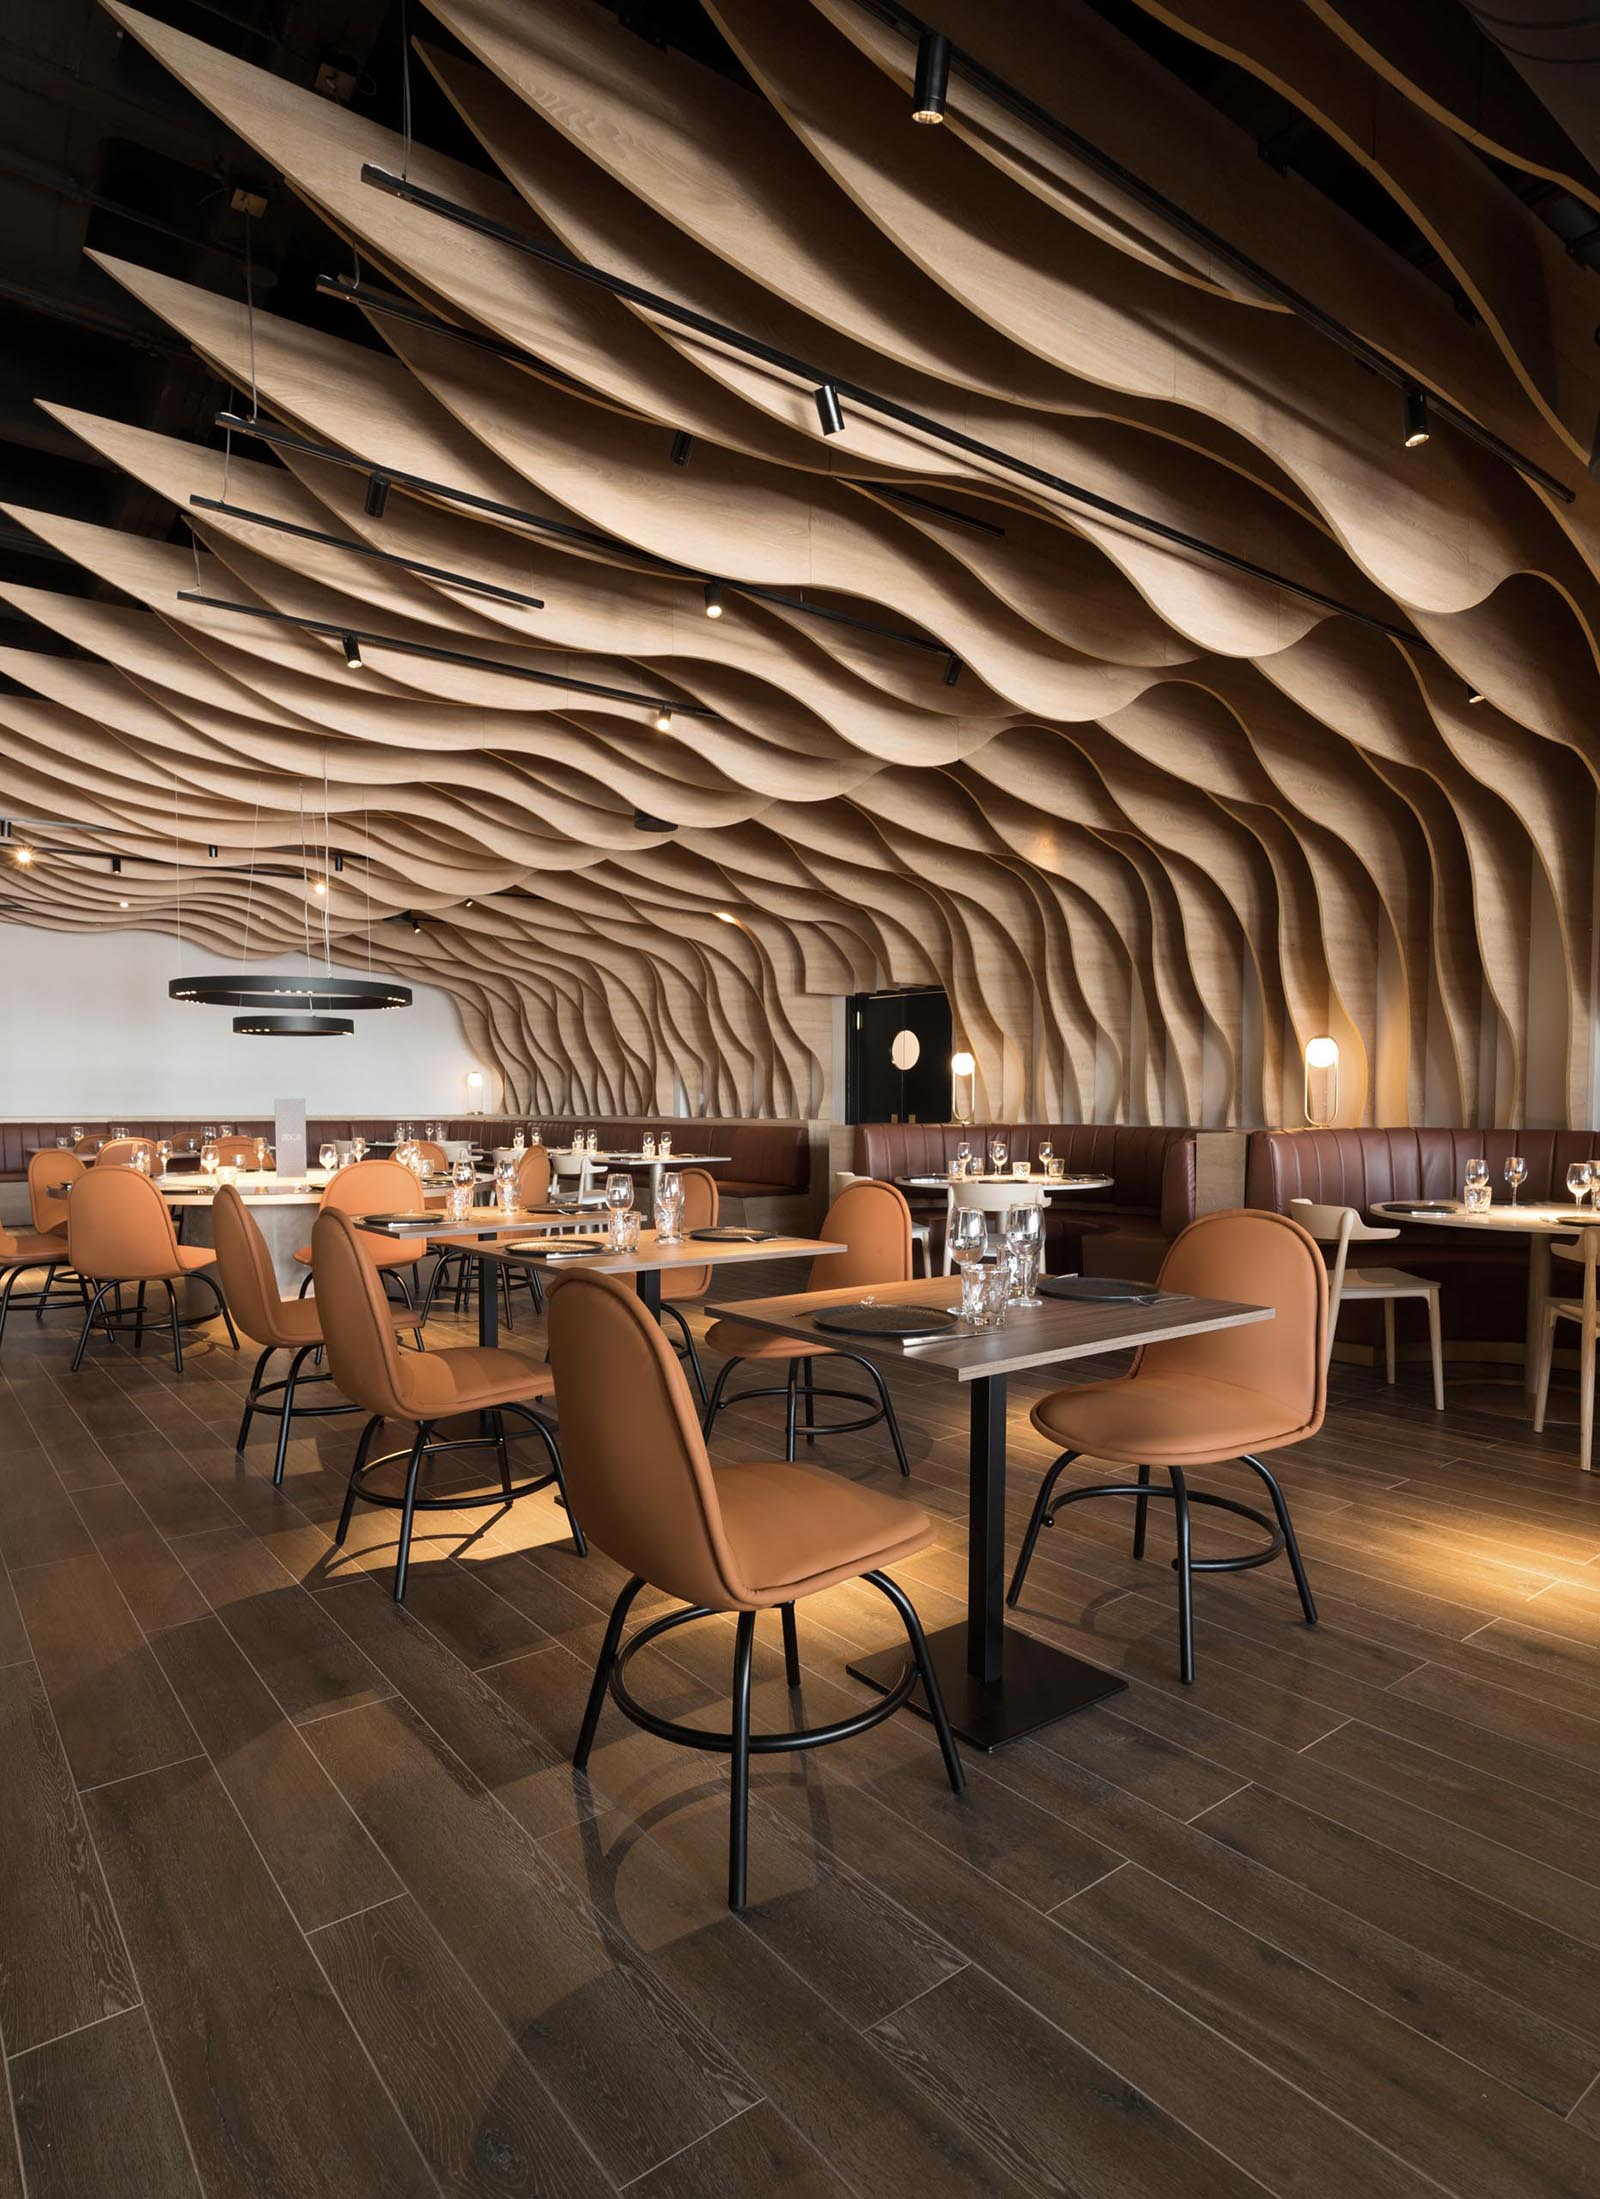 A modern restaurant with sculptural wood fins that cover the walls and ceiling, and match the surrounding furniture.